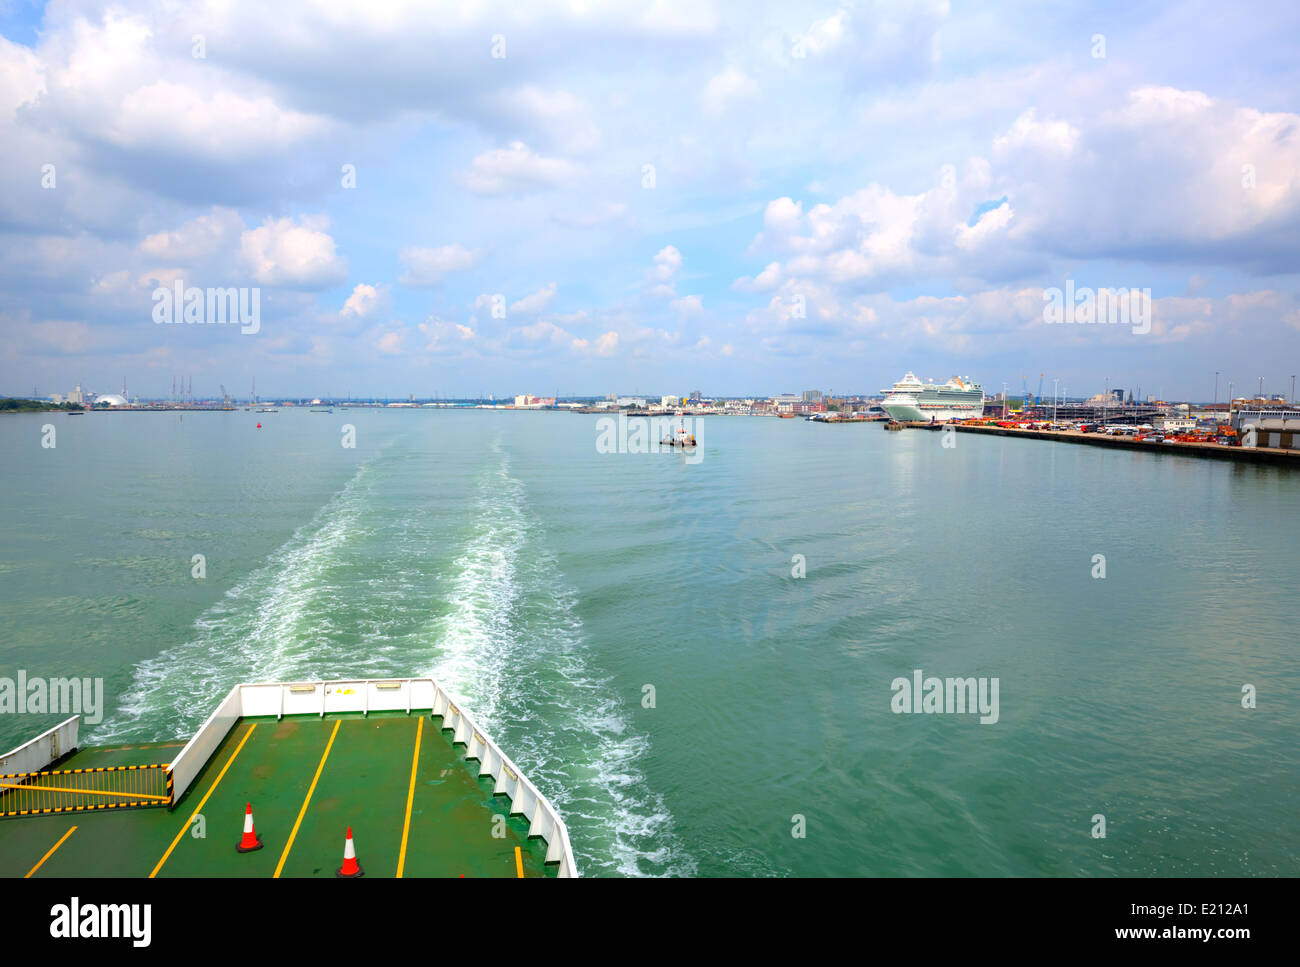 Leaving Southampton port on the ferry with view of docks - Stock Image